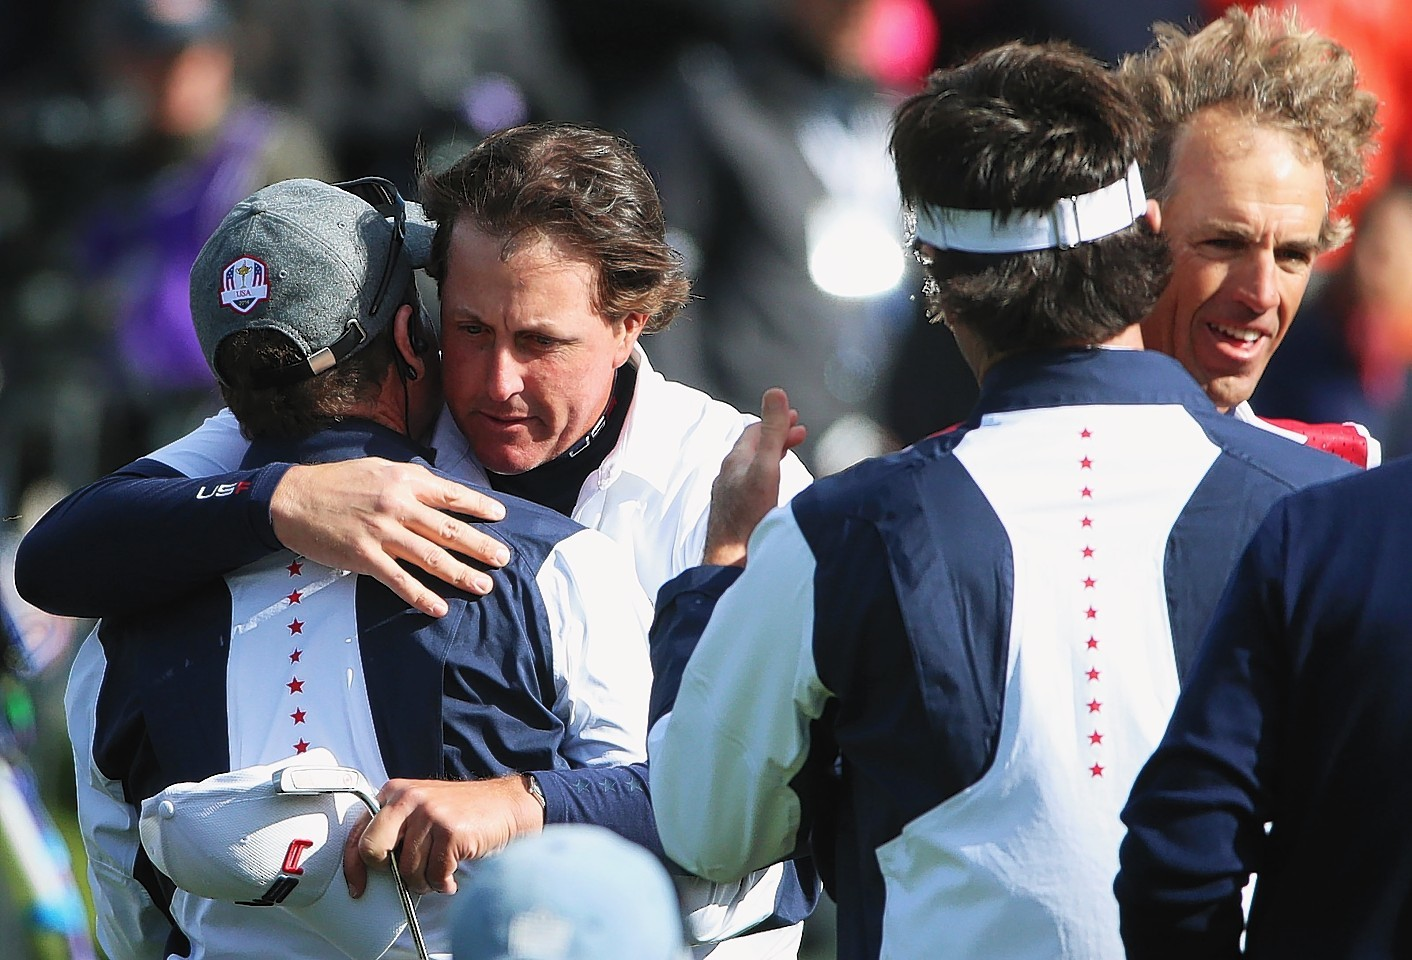 American Phil Mickelson embraced his team mates after he and Bradley defeated McIlroy and Garcia